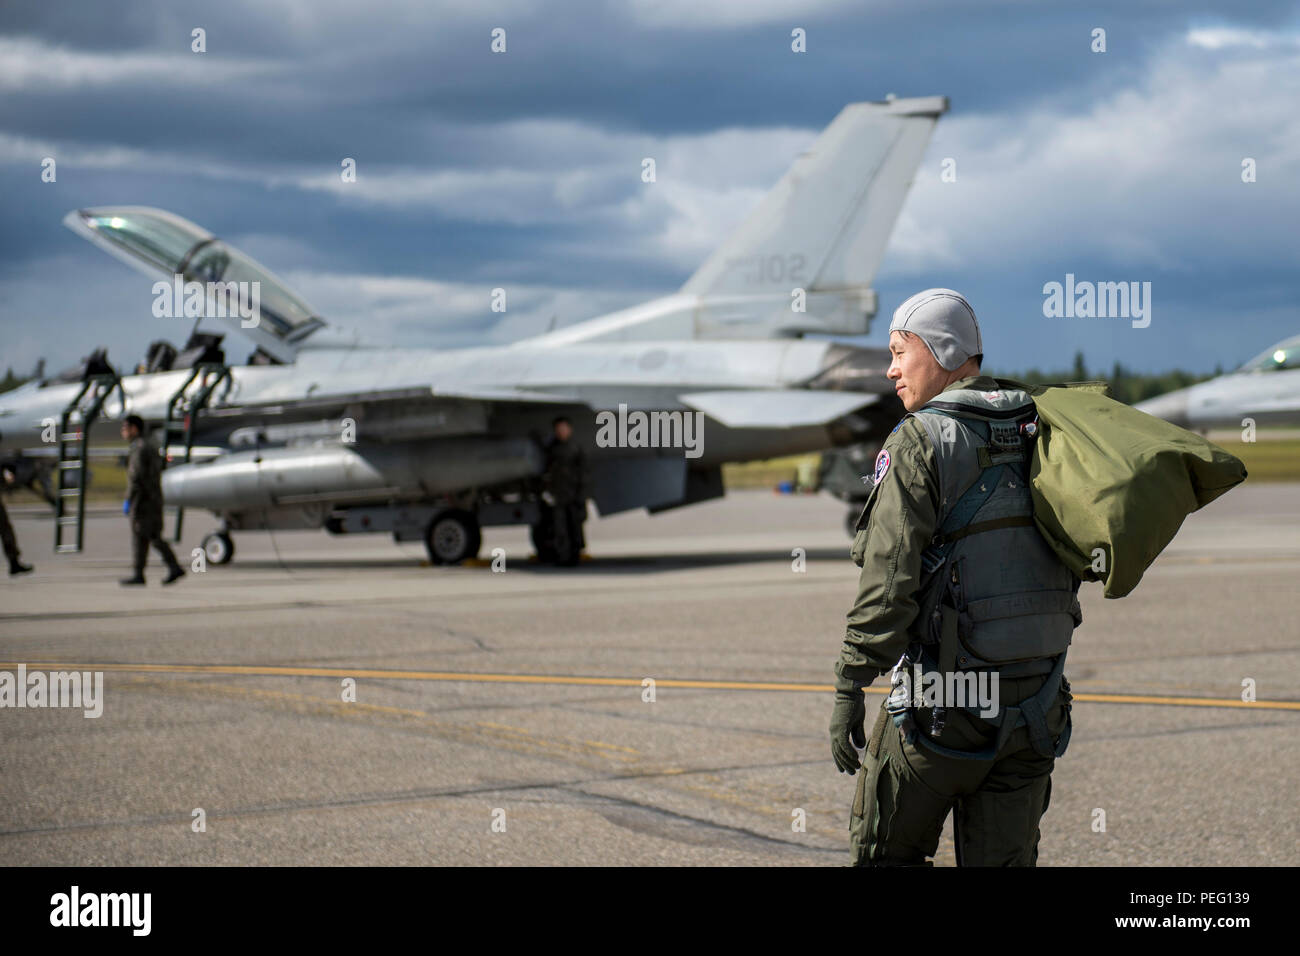 Republic of Korea air force (ROKAF) Maj. Lee Dong Seop, a ROKAF F-16D Fighting Falcon pilot, carries equipment to his aircraft, Aug. 11, 2015, prior to the launch of a RED FLAG-Alaska (RF-A) 15-3 sortie from Eielson Air Force Base, Alaska. The ROKAF flew a squadron of F-16Ds across the Pacific Ocean to train in the Joint Pacific Alaska Range Complex's 67,000 square miles of airspace for two weeks of realistic combat flying training throughout RF-A 15-3. (U.S. Air Force photo by 1st Lt. Elias Zani/Released) - Stock Image